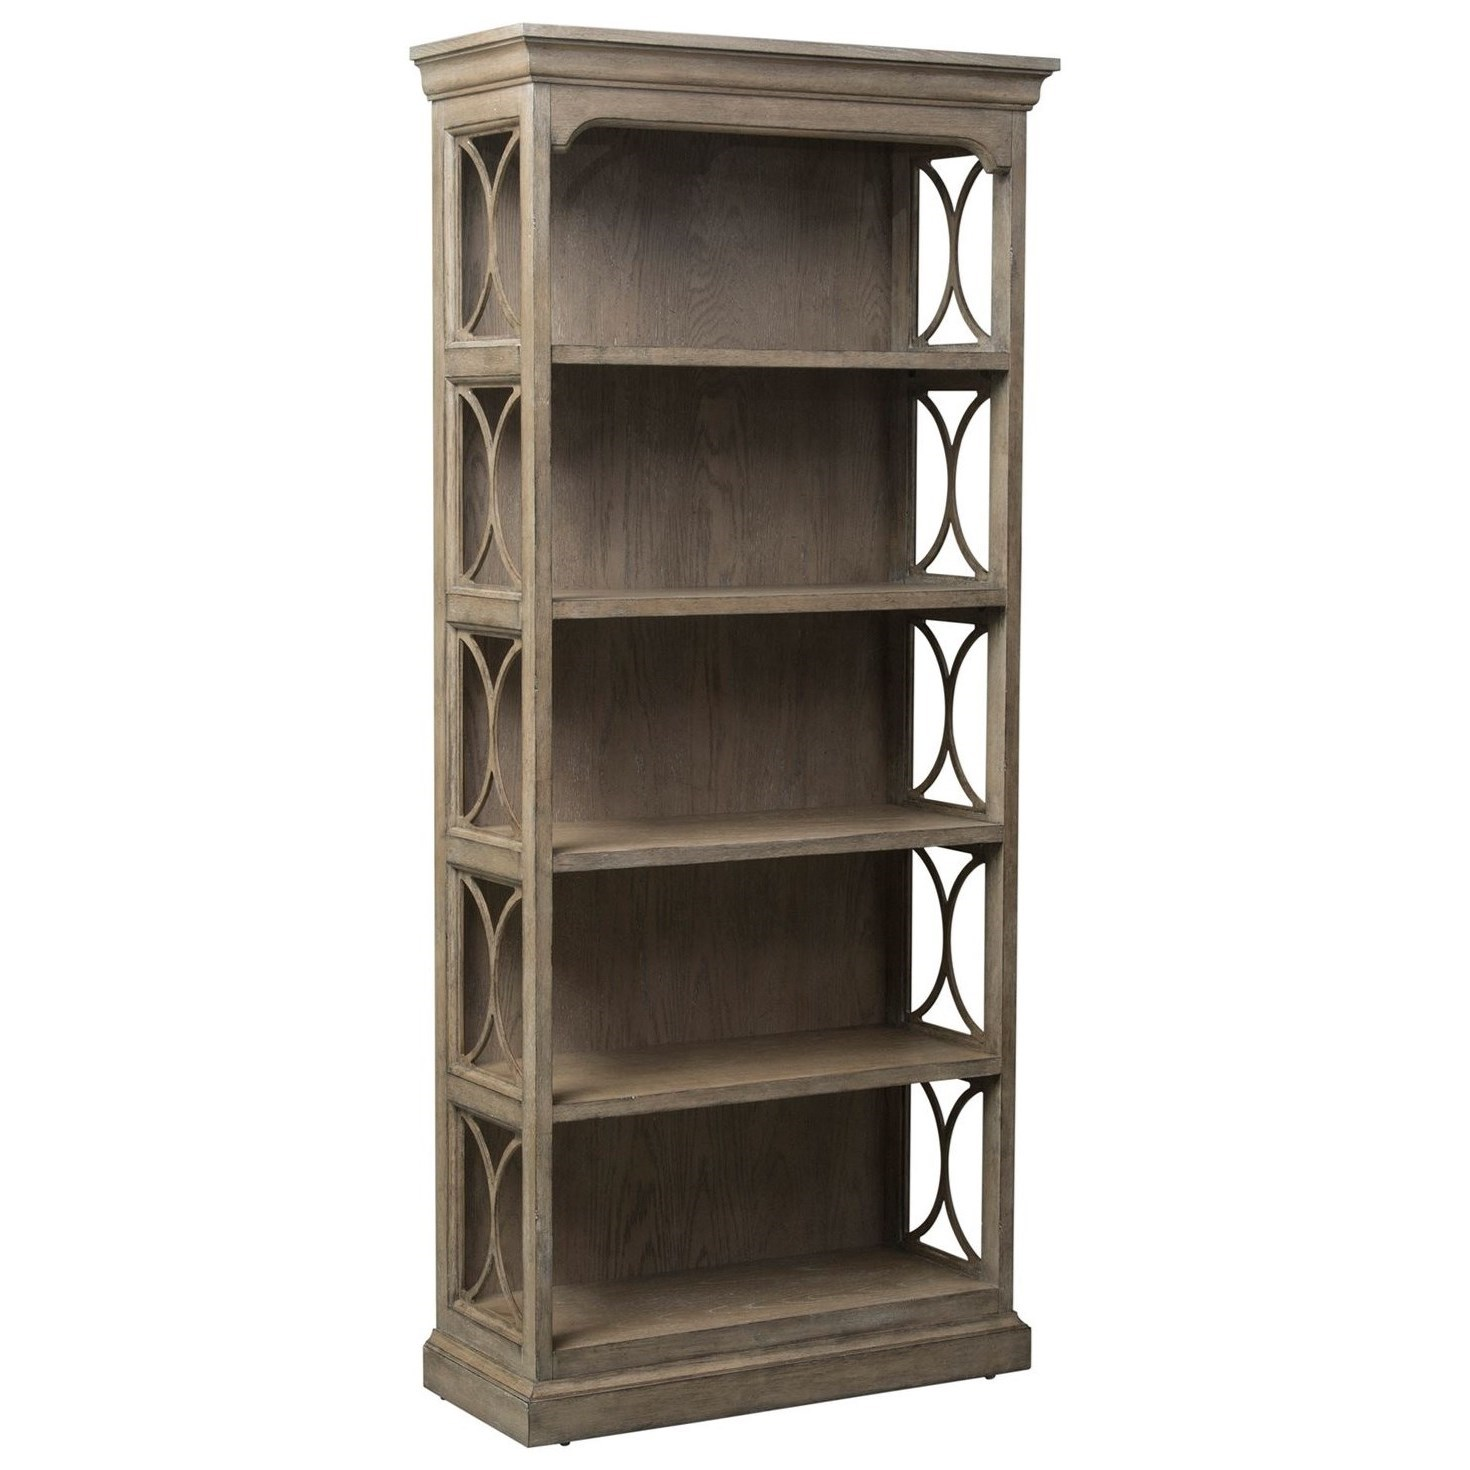 Simply Elegant Bookcase by Libby at Walker's Furniture